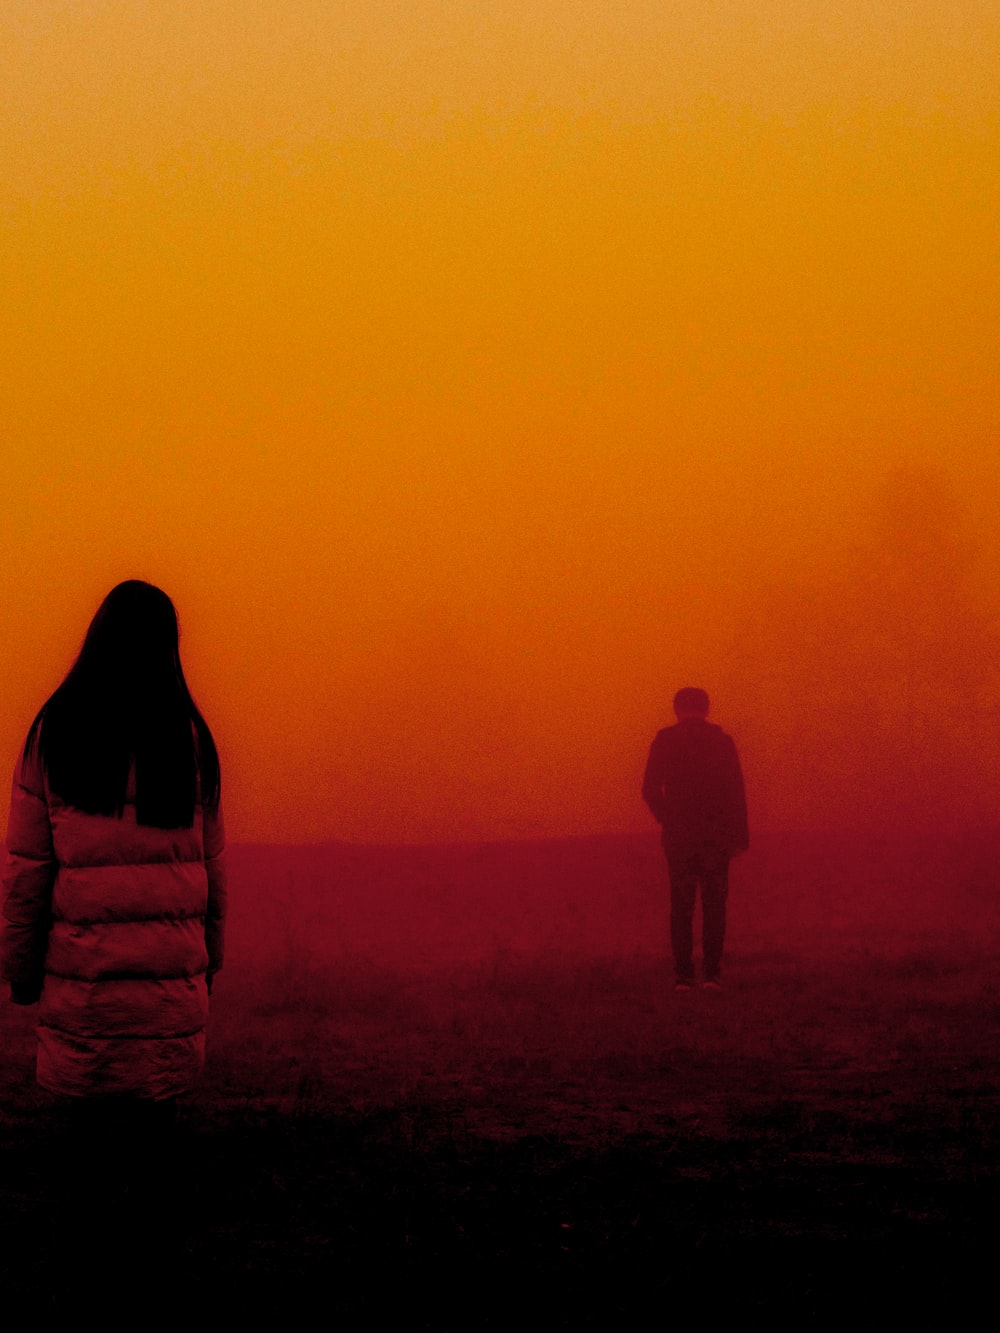 woman wearing coat looking the boy about to walk to away